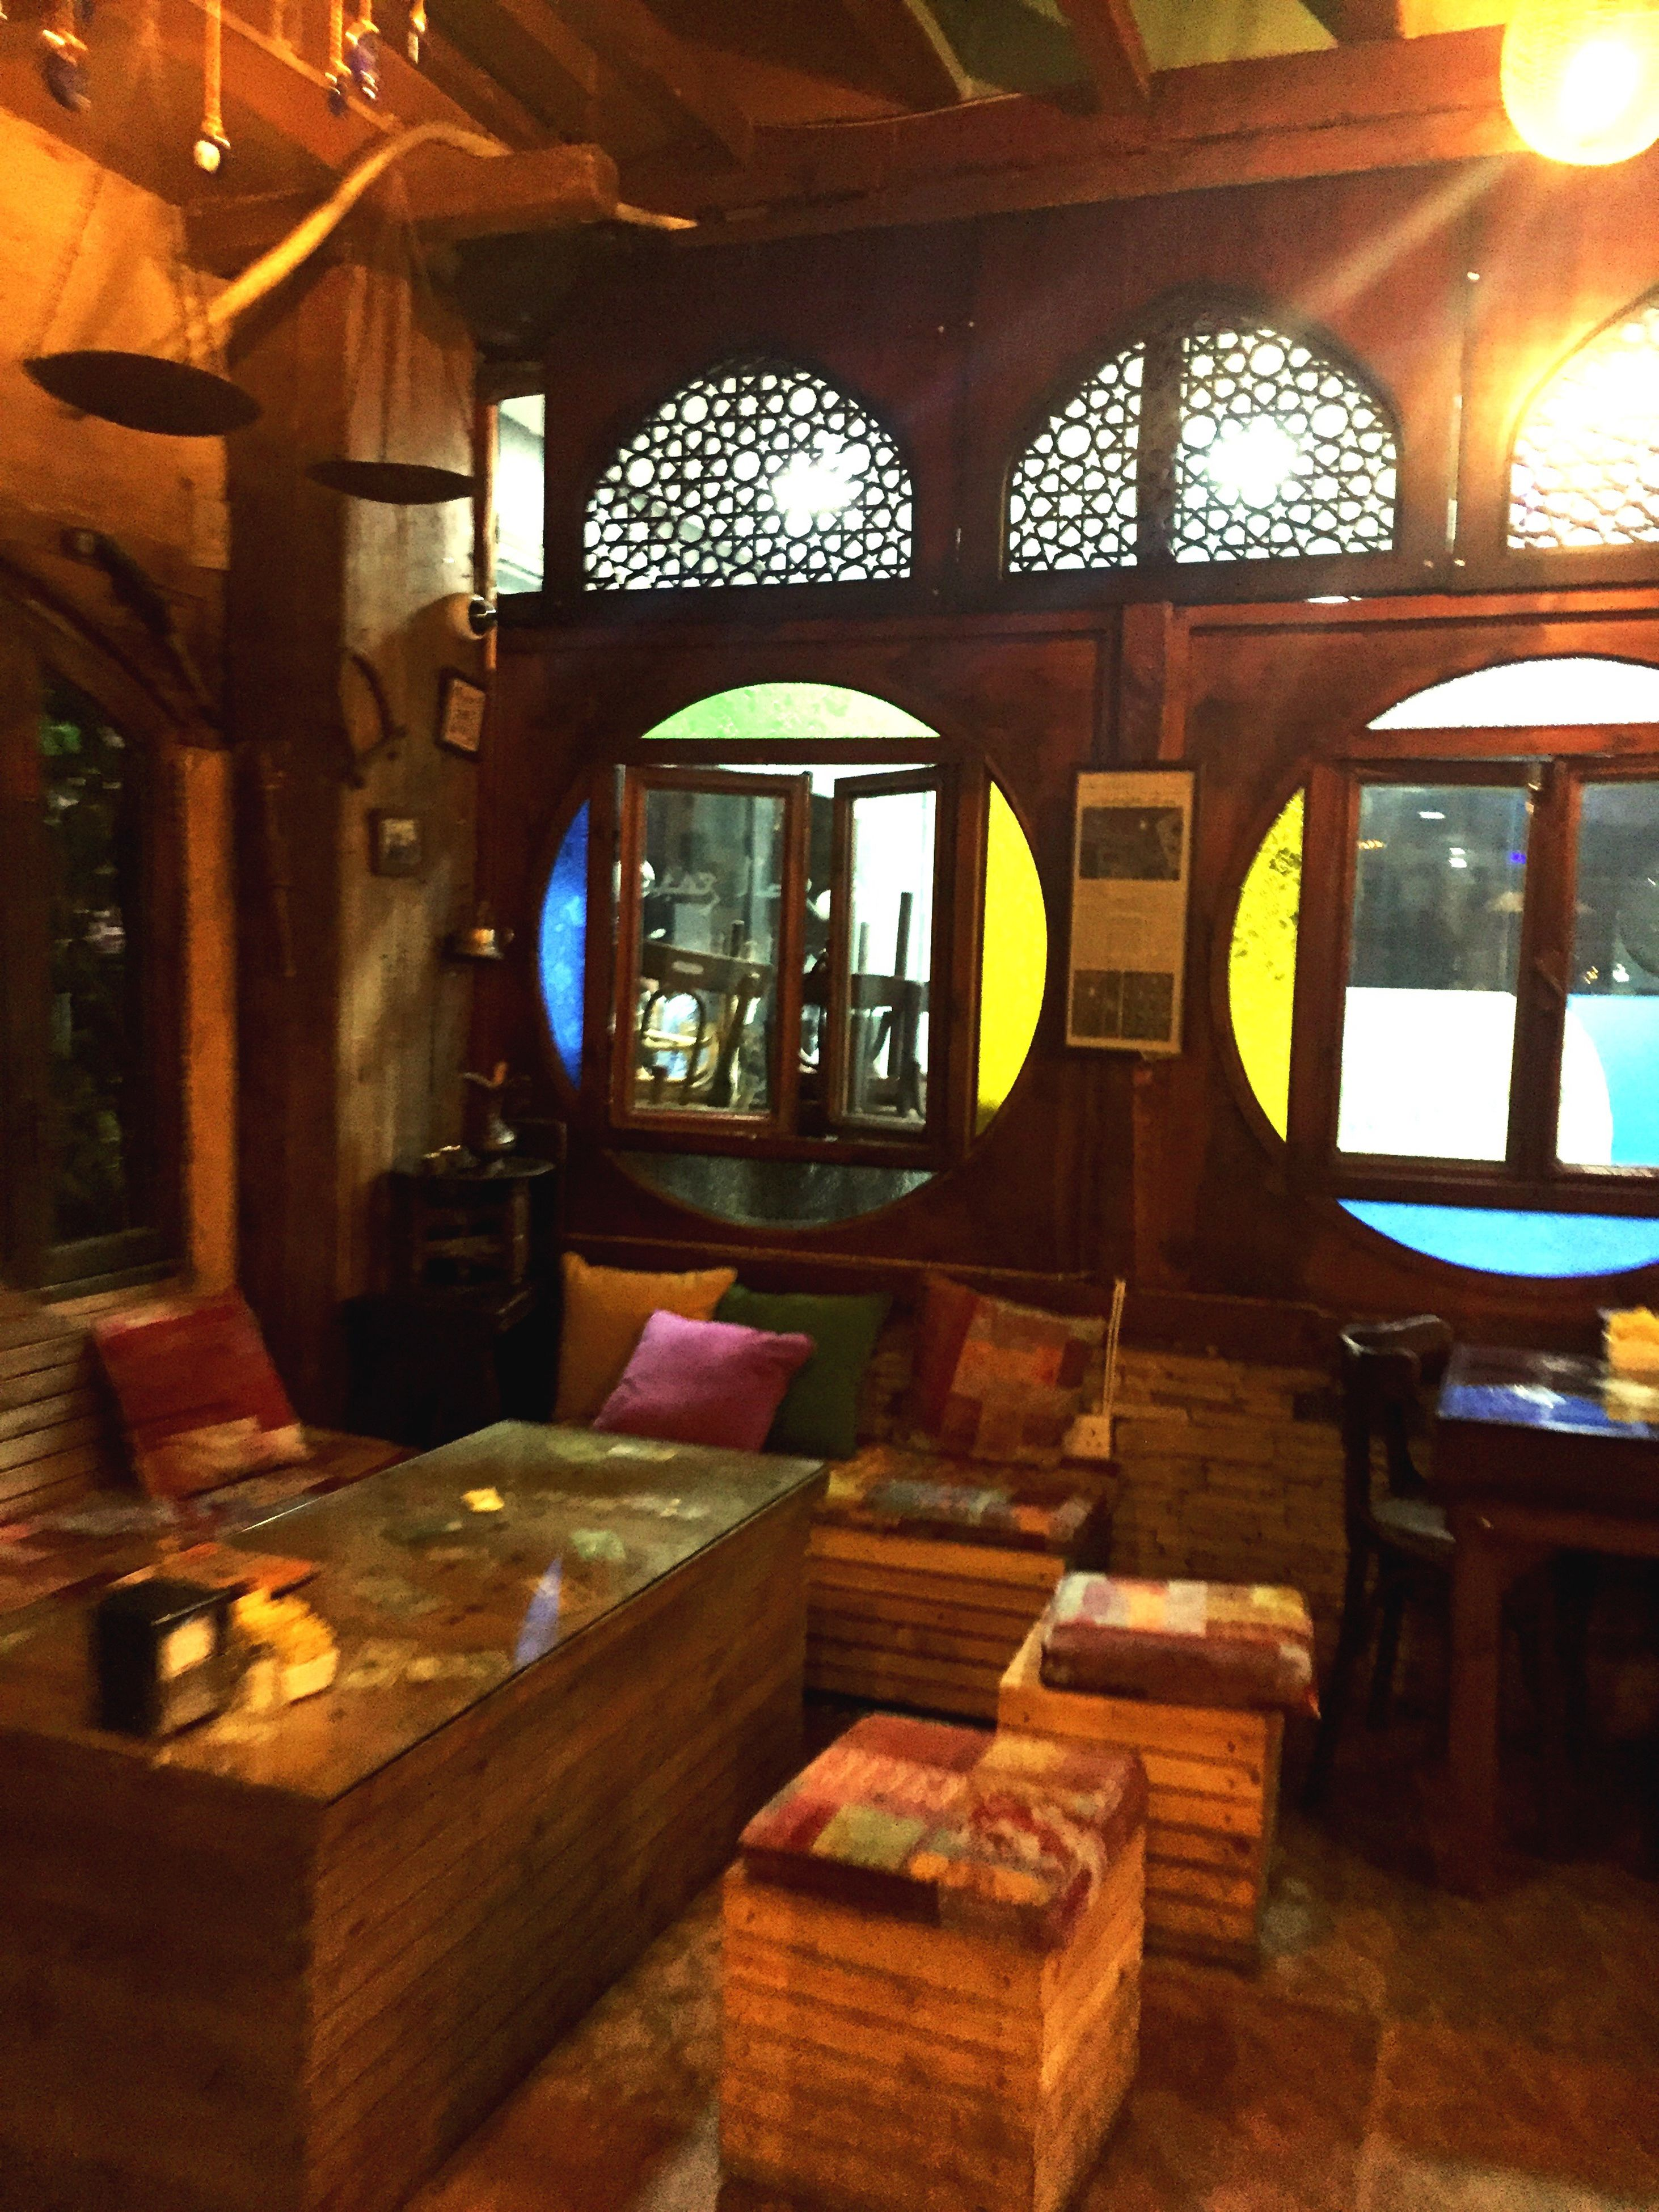 indoors, table, built structure, architecture, day, no people, tourist resort, interior